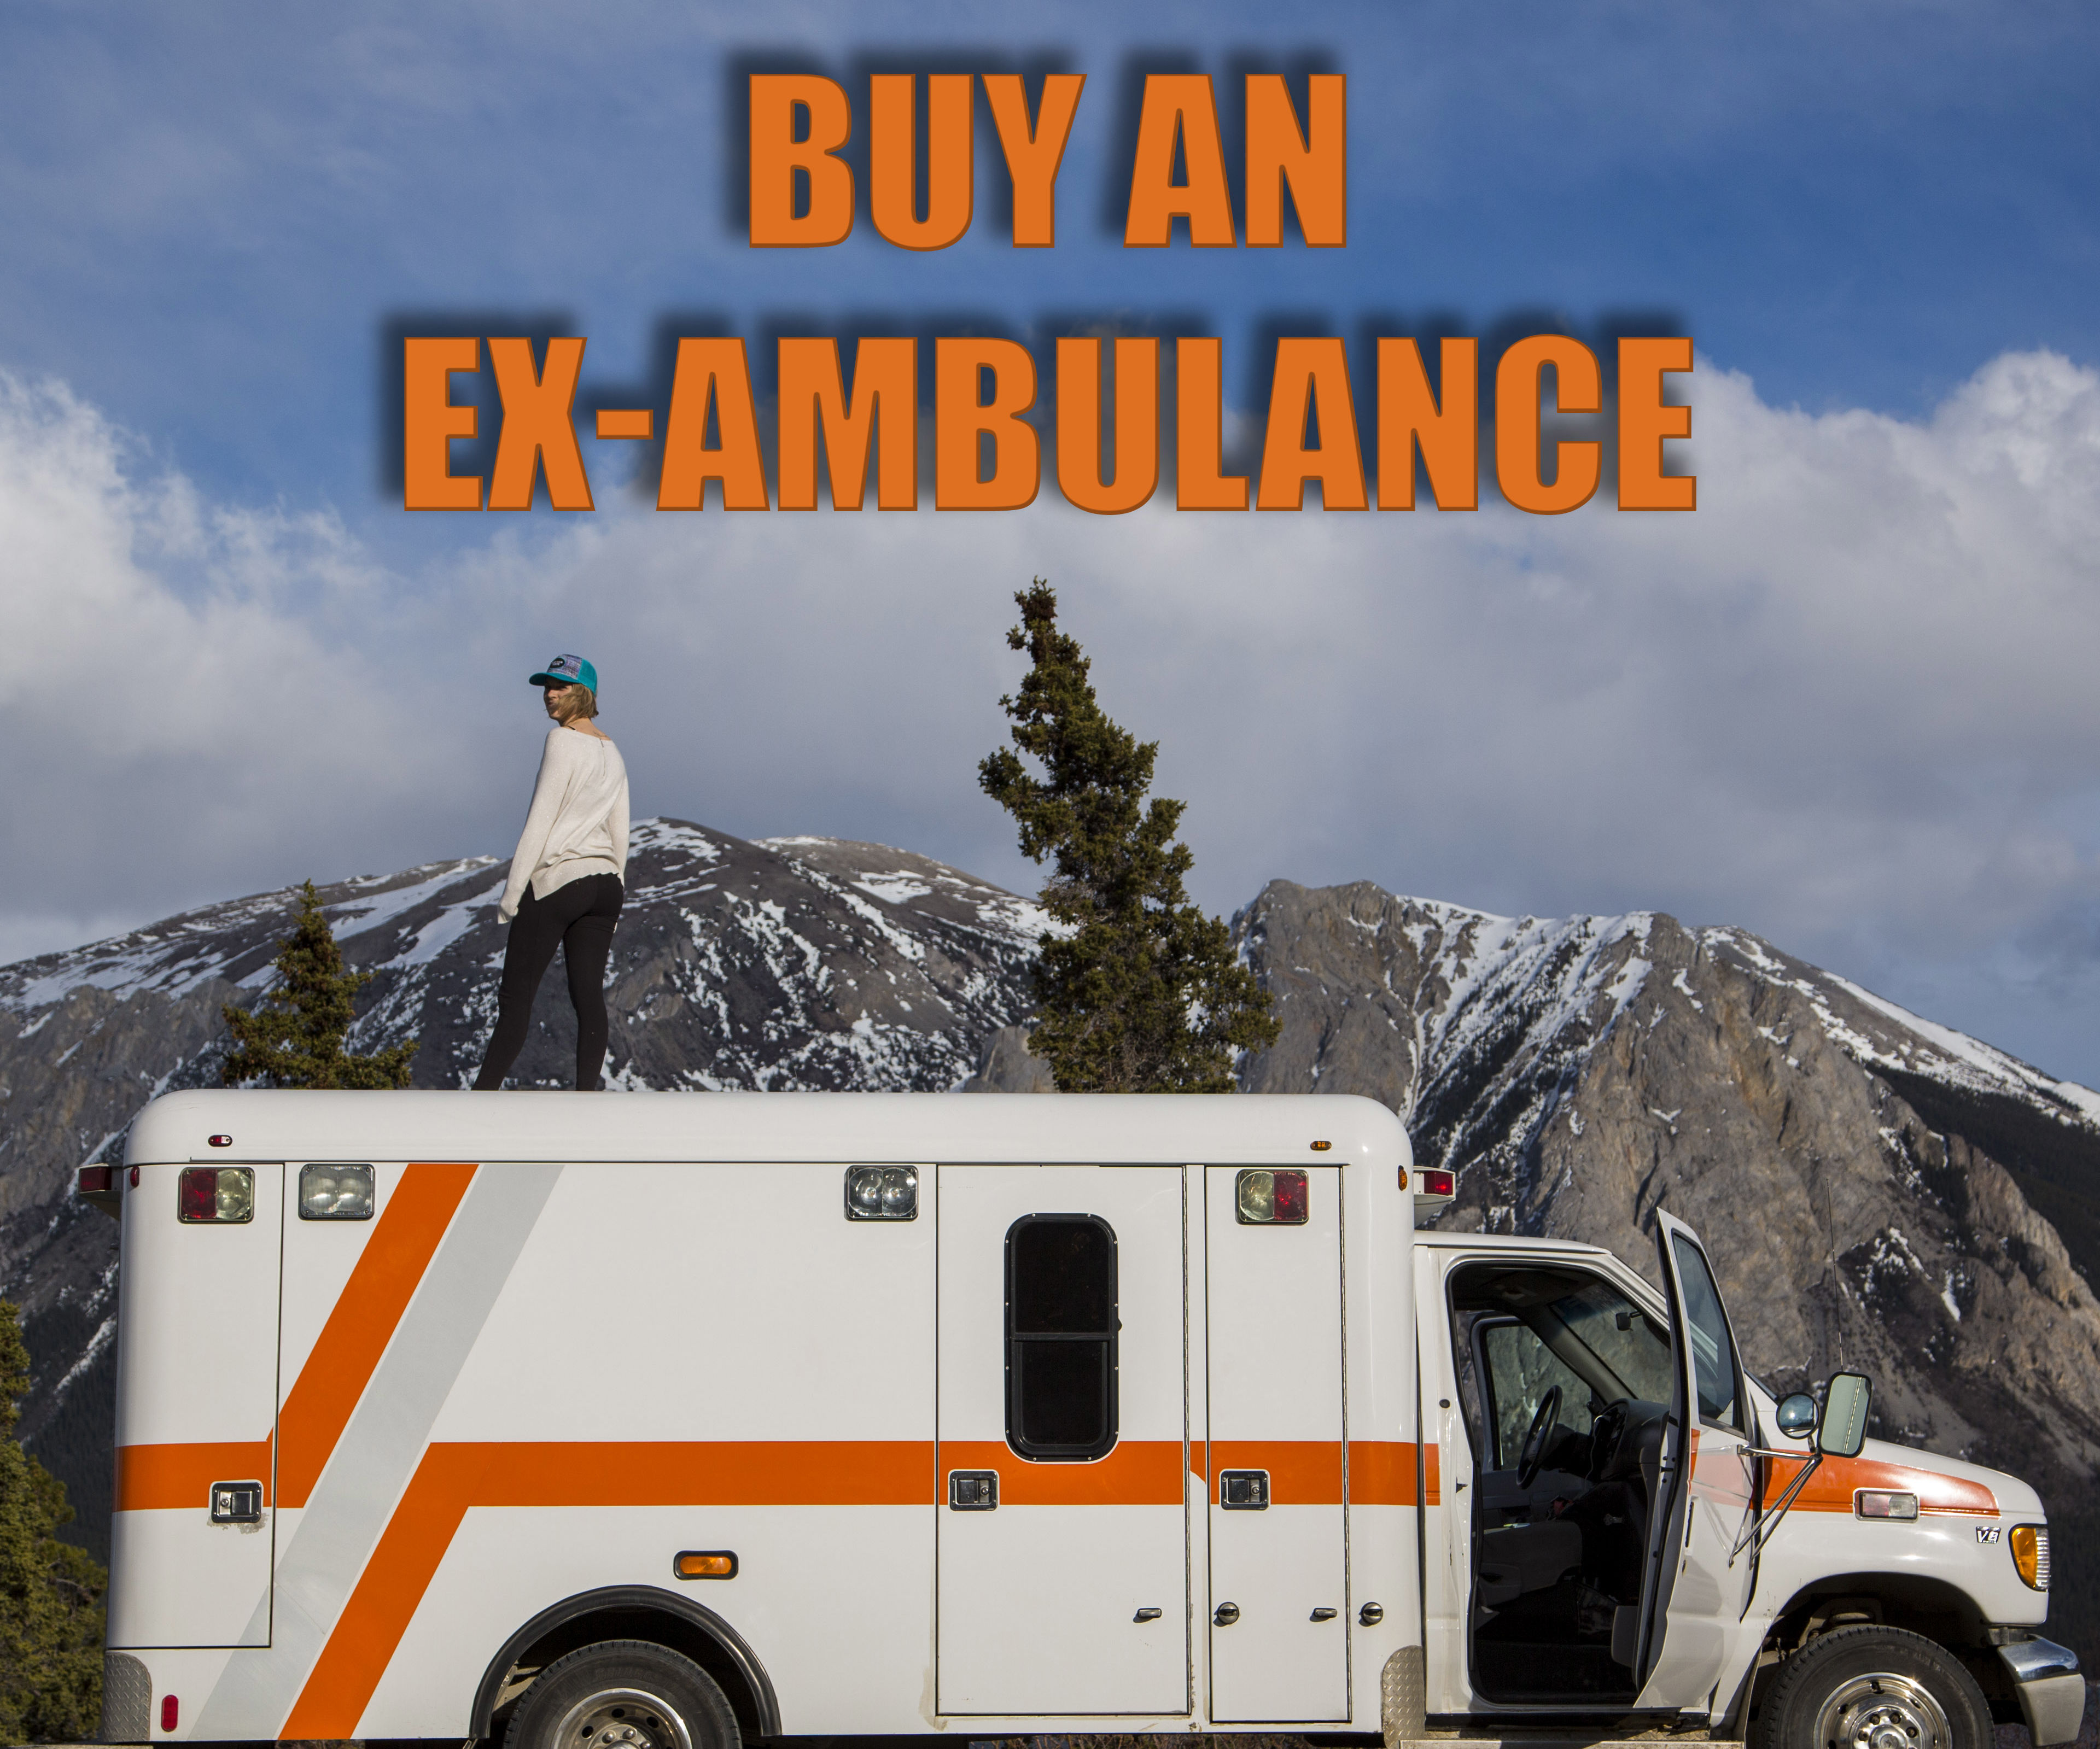 How to Buy an Ex-Ambulance: 4 Steps (with Pictures)